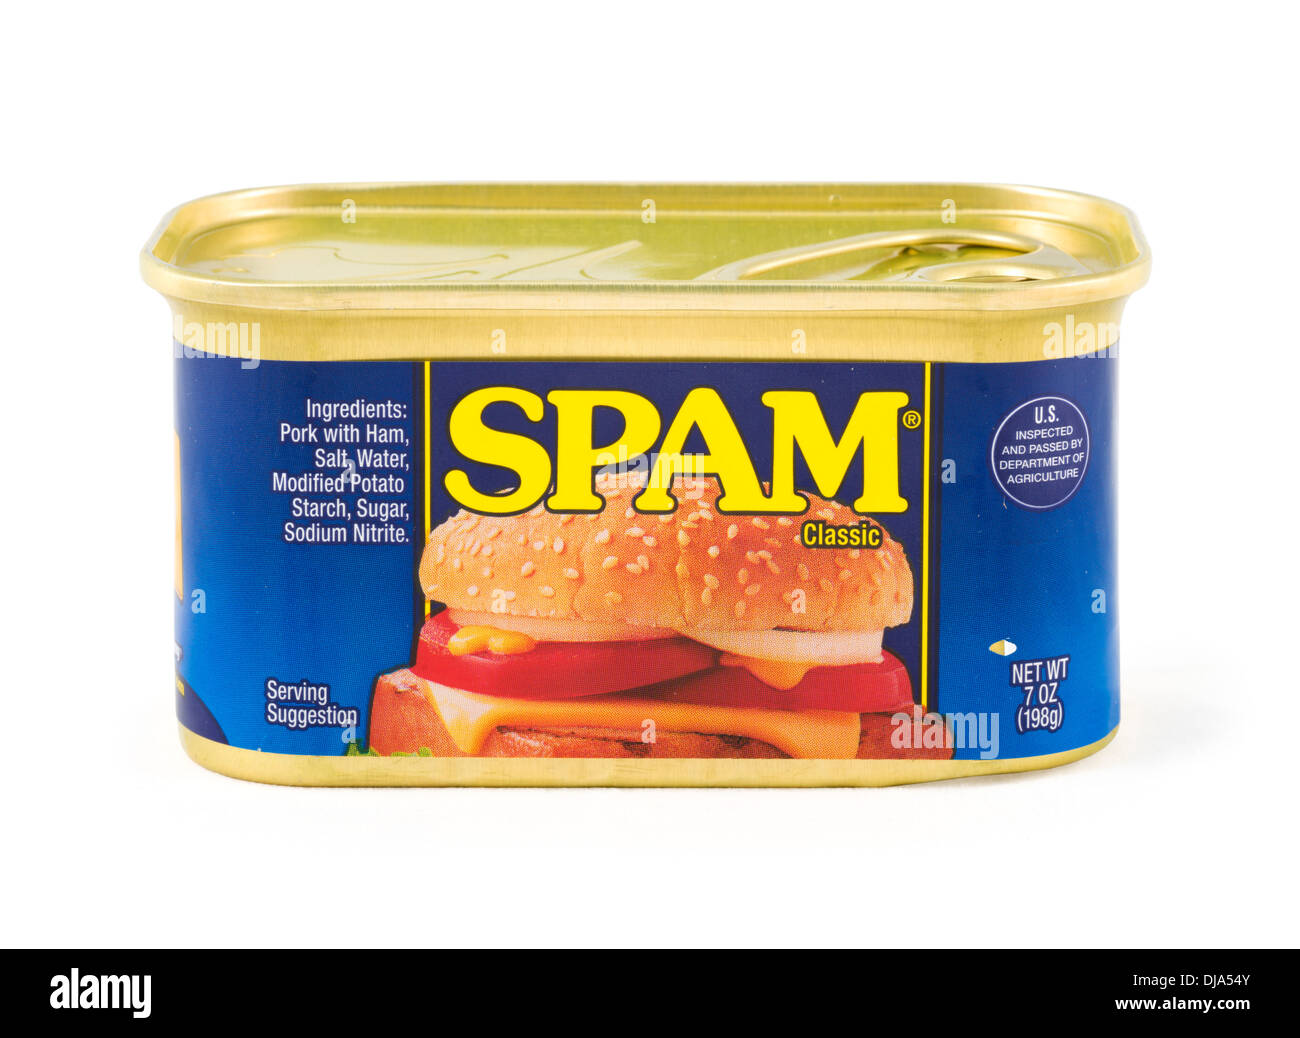 Tin of Spam processed meat, USA - Stock Image